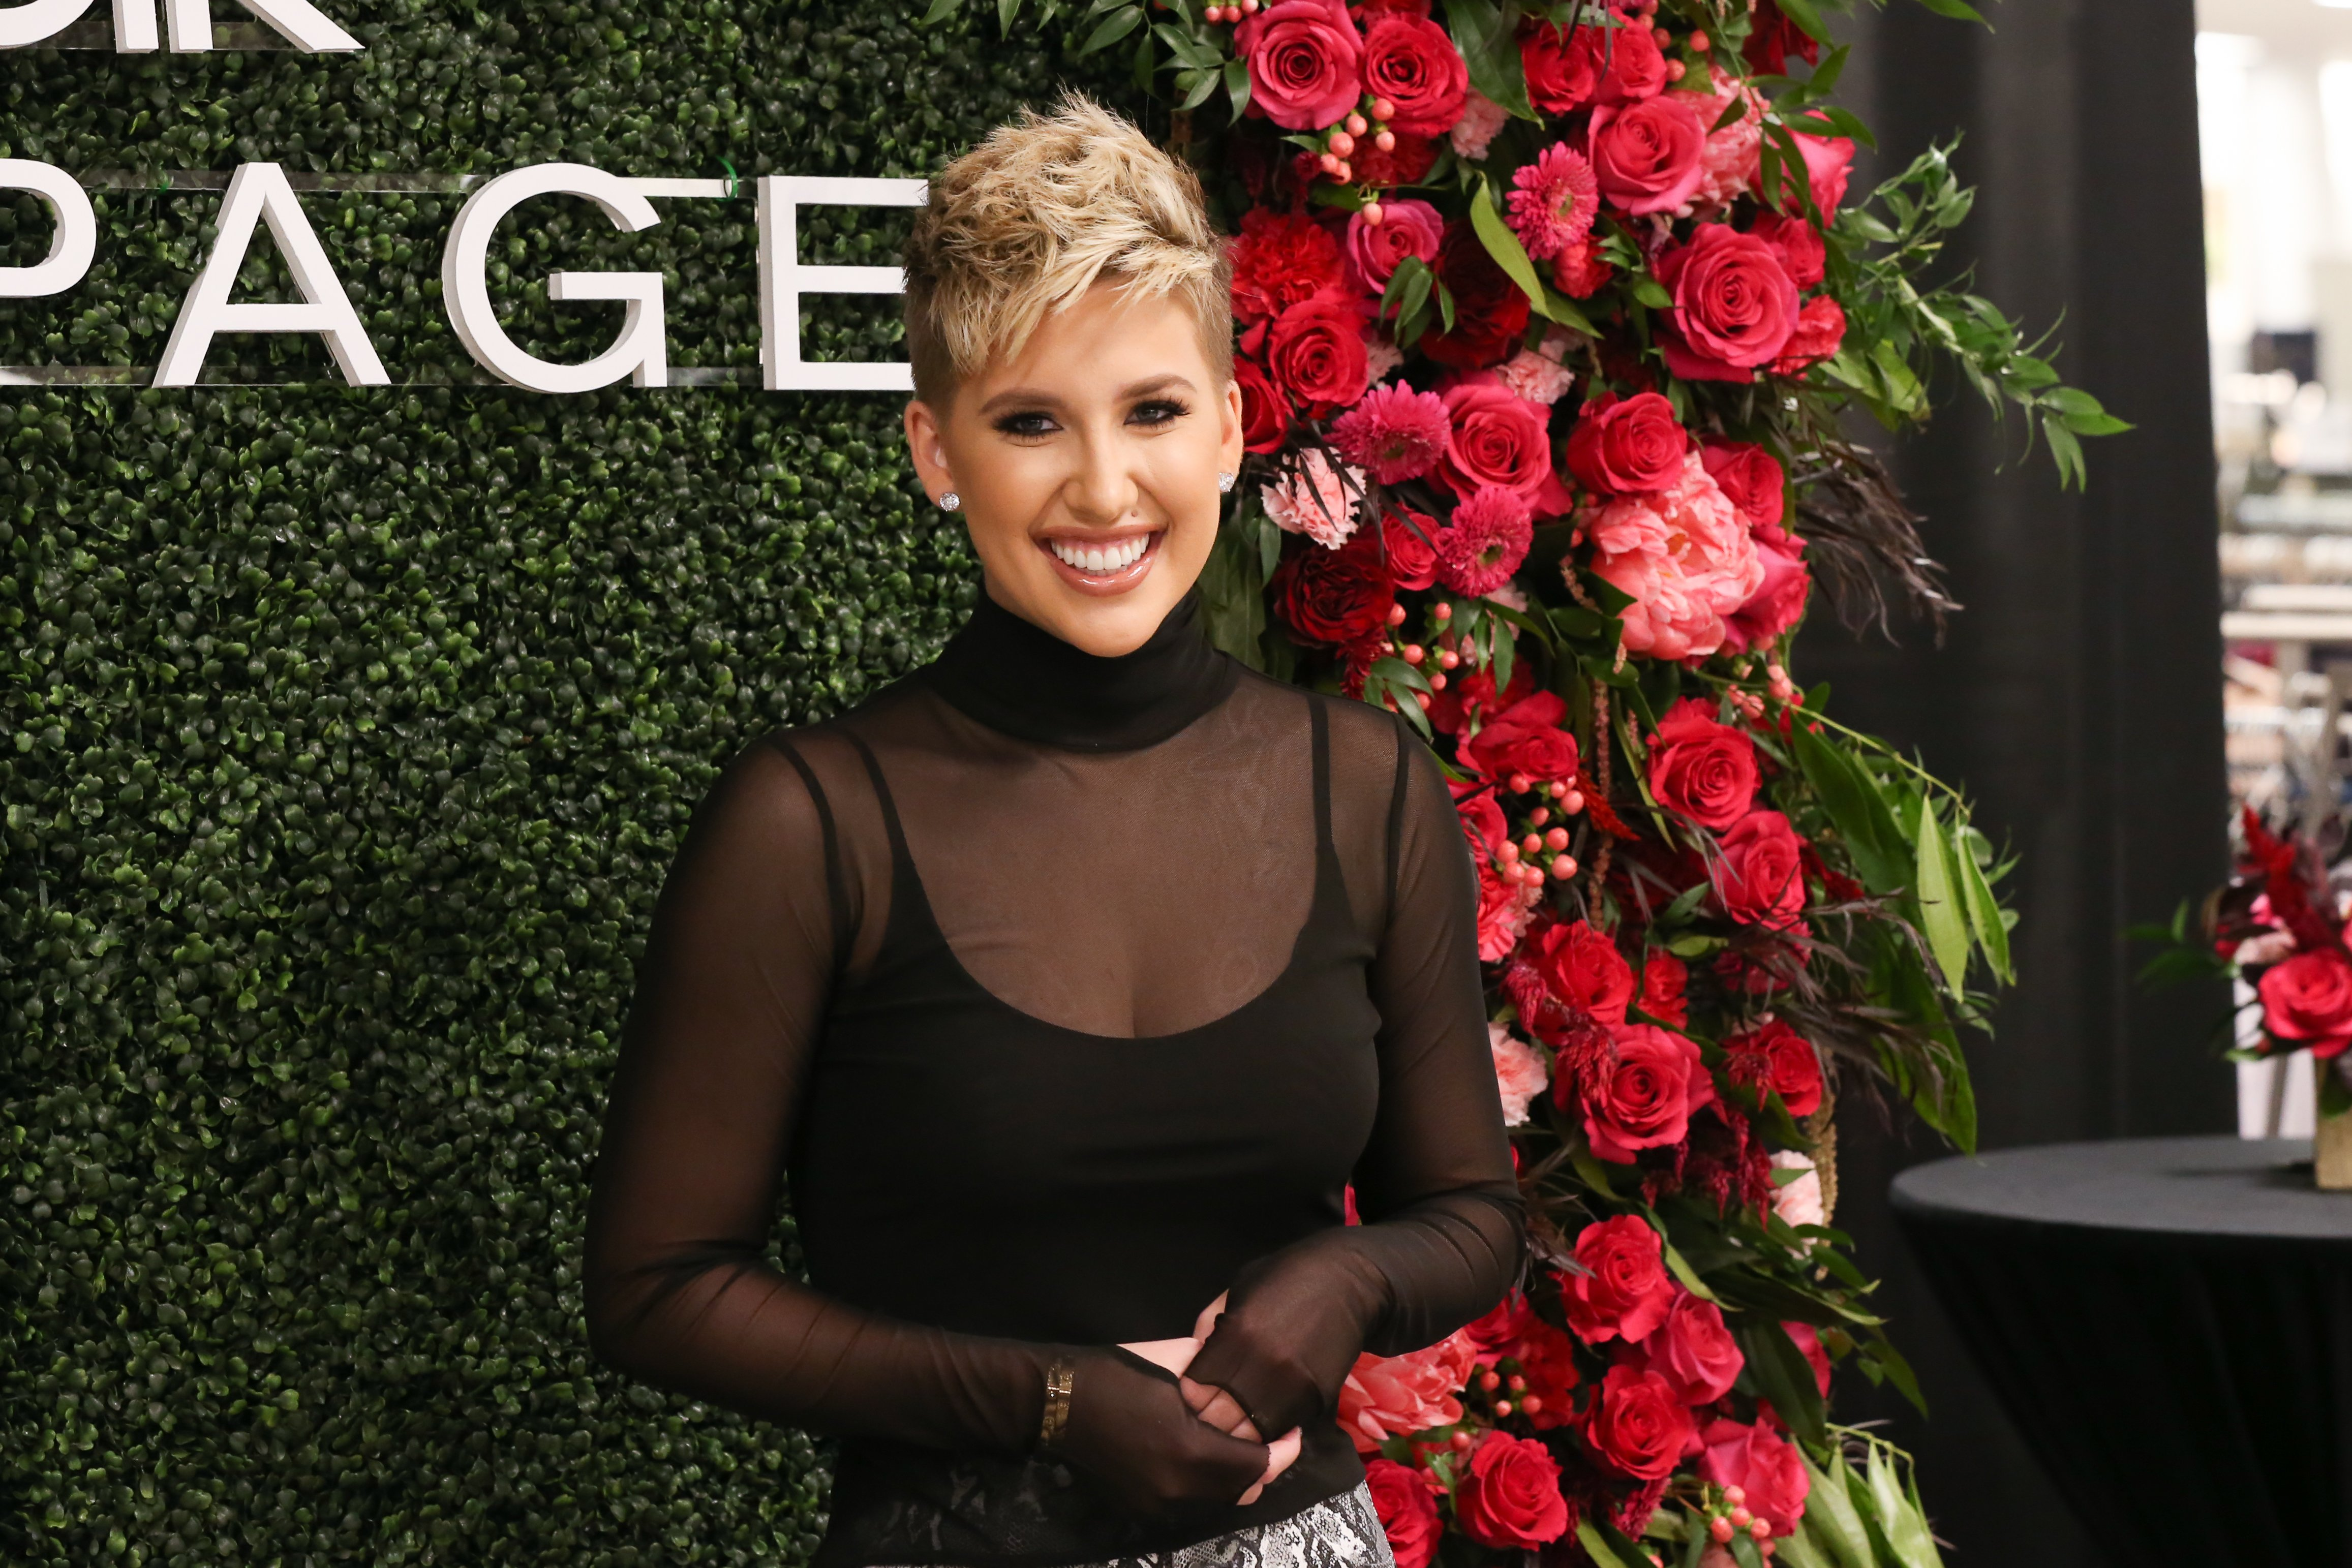 Savannah Chrisley makes a personal appearance at Belk at Cool Springs Galleria Mall on November 05, 2019 in Franklin, Tennessee | Photo: Getty Images